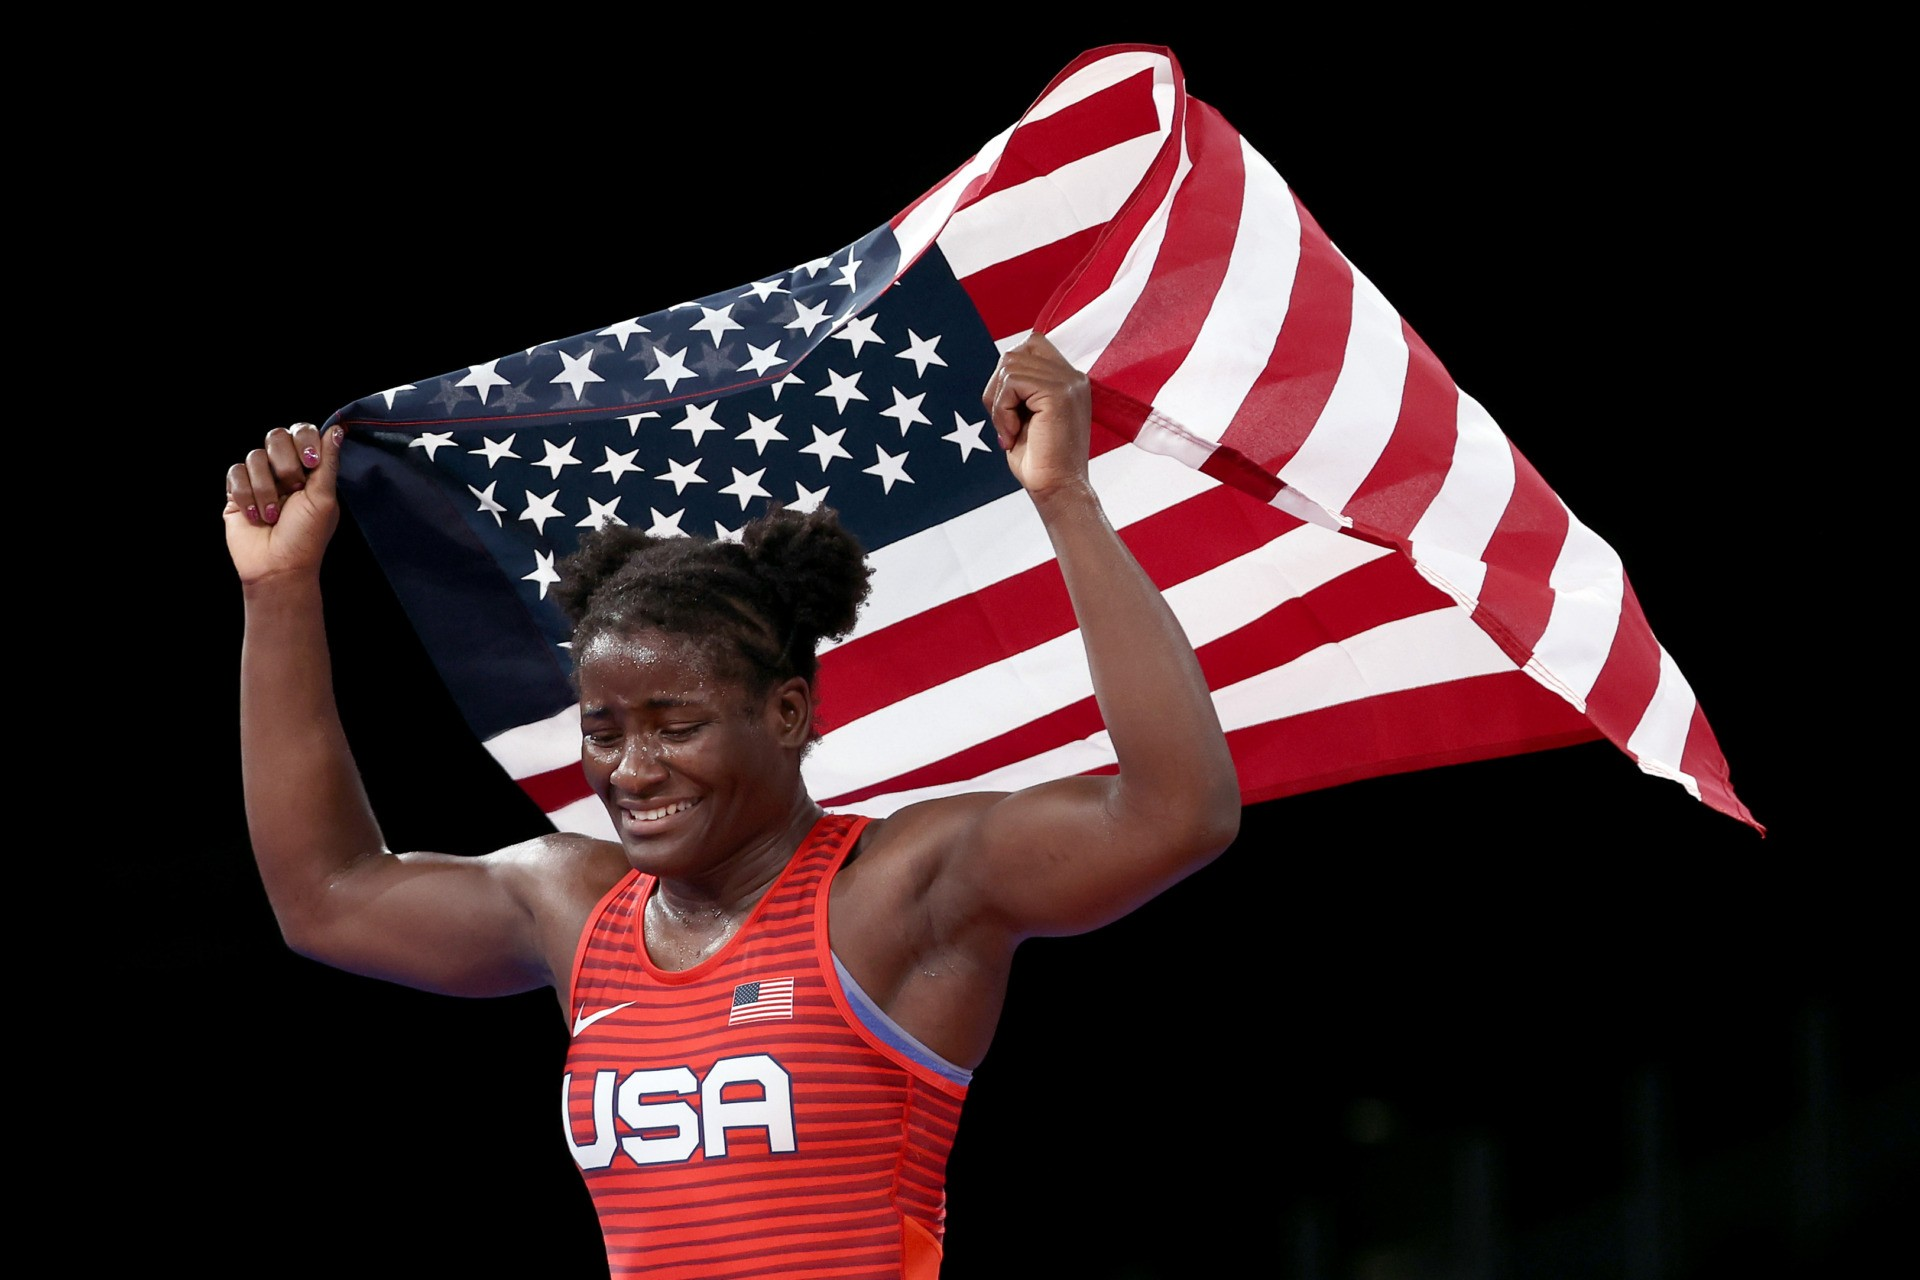 CHIBA, JAPAN - AUGUST 03: Tamyra Mariama Mensah-Stock of Team United States celebrates defeating Blessing Oborududu of Team Nigeria during the Women's Freestyle 68kg Gold Medal Match on day eleven of the Tokyo 2020 Olympic Games at Makuhari Messe Hall on August 03, 2021 in Chiba, Japan. (Photo by Tom Pennington/Getty Images)